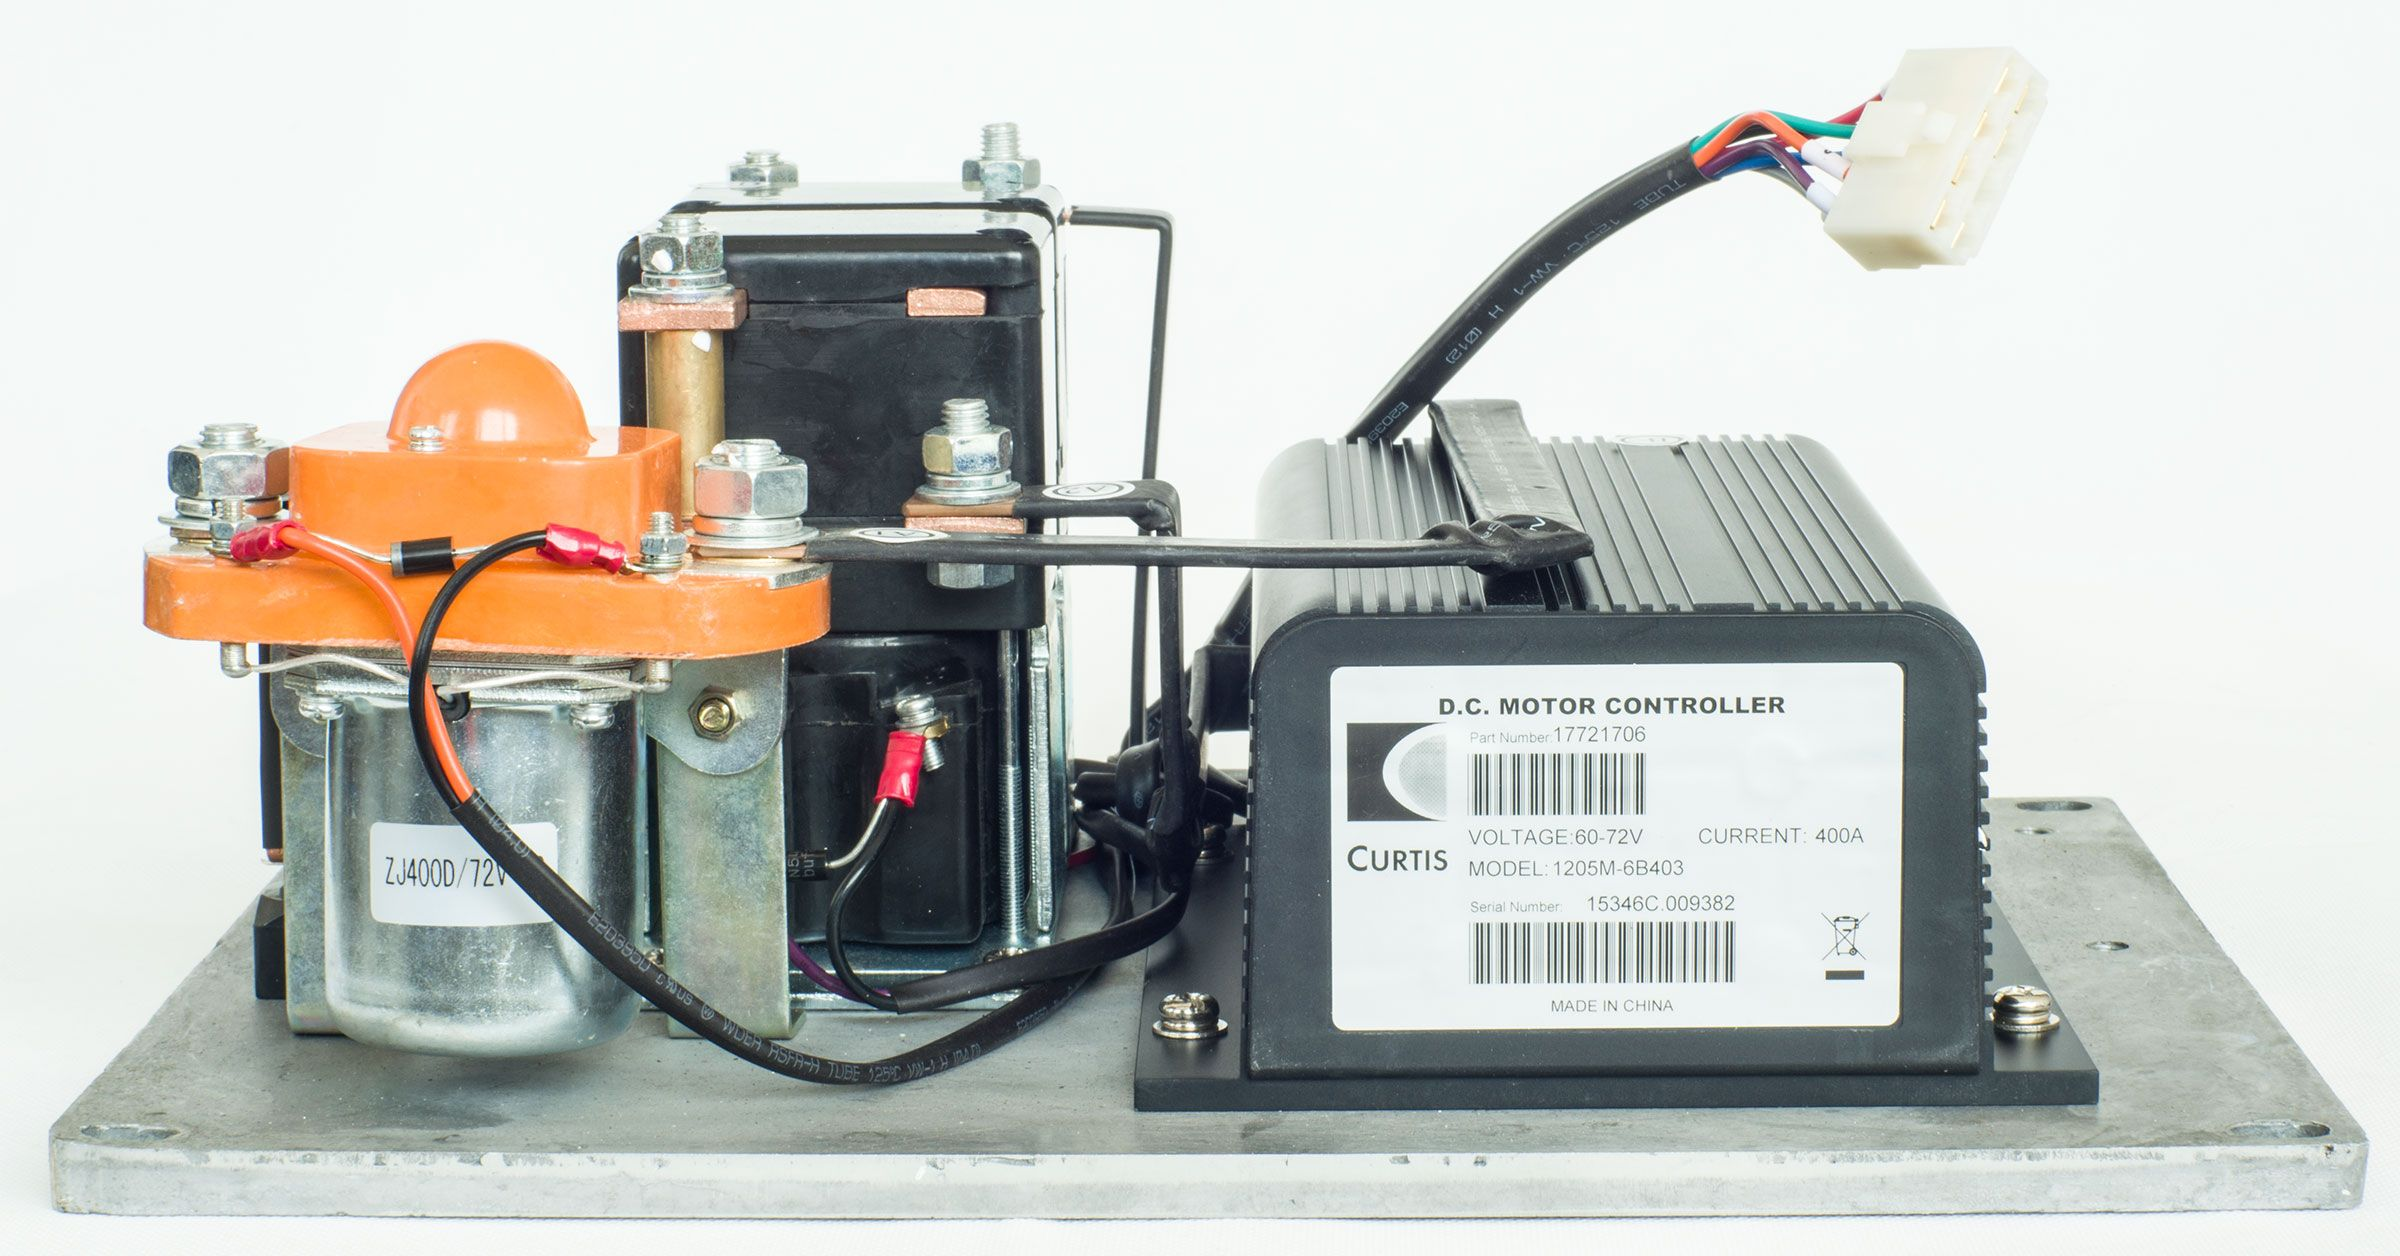 CURTIS DC Series Motor Speed  Controller Assemblage, Model 1205M-6B403 (Upgraded Version of 1205M-6401 / 1205M-6B401), 60V / 72V - 400A, with Foot Pedal (throttle) and Installation Kit